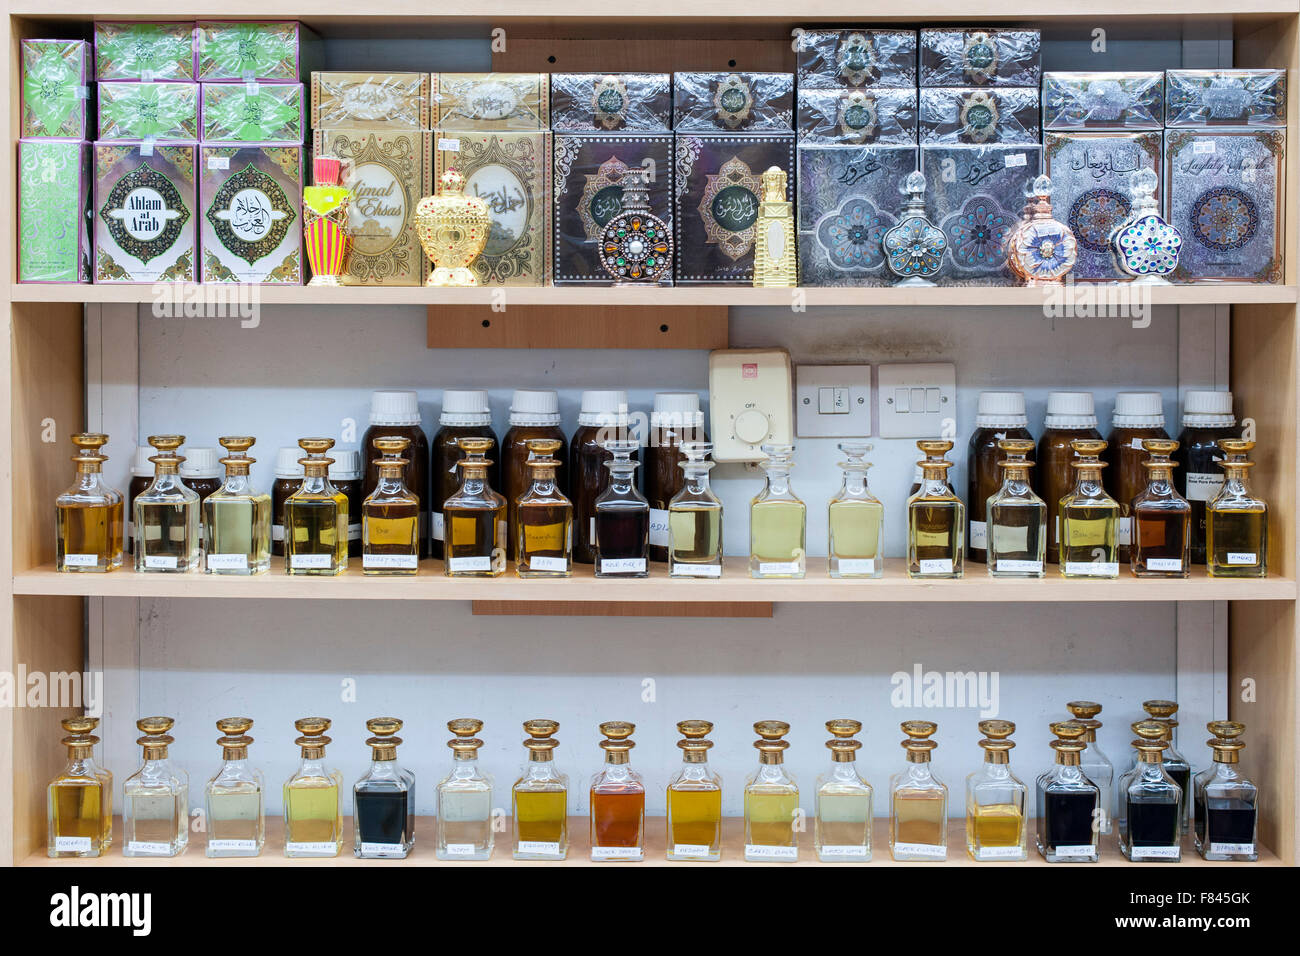 Perfume for sale in the Mutrah souk in Muscat, the capital of the Sultanate of Oman. - Stock Image